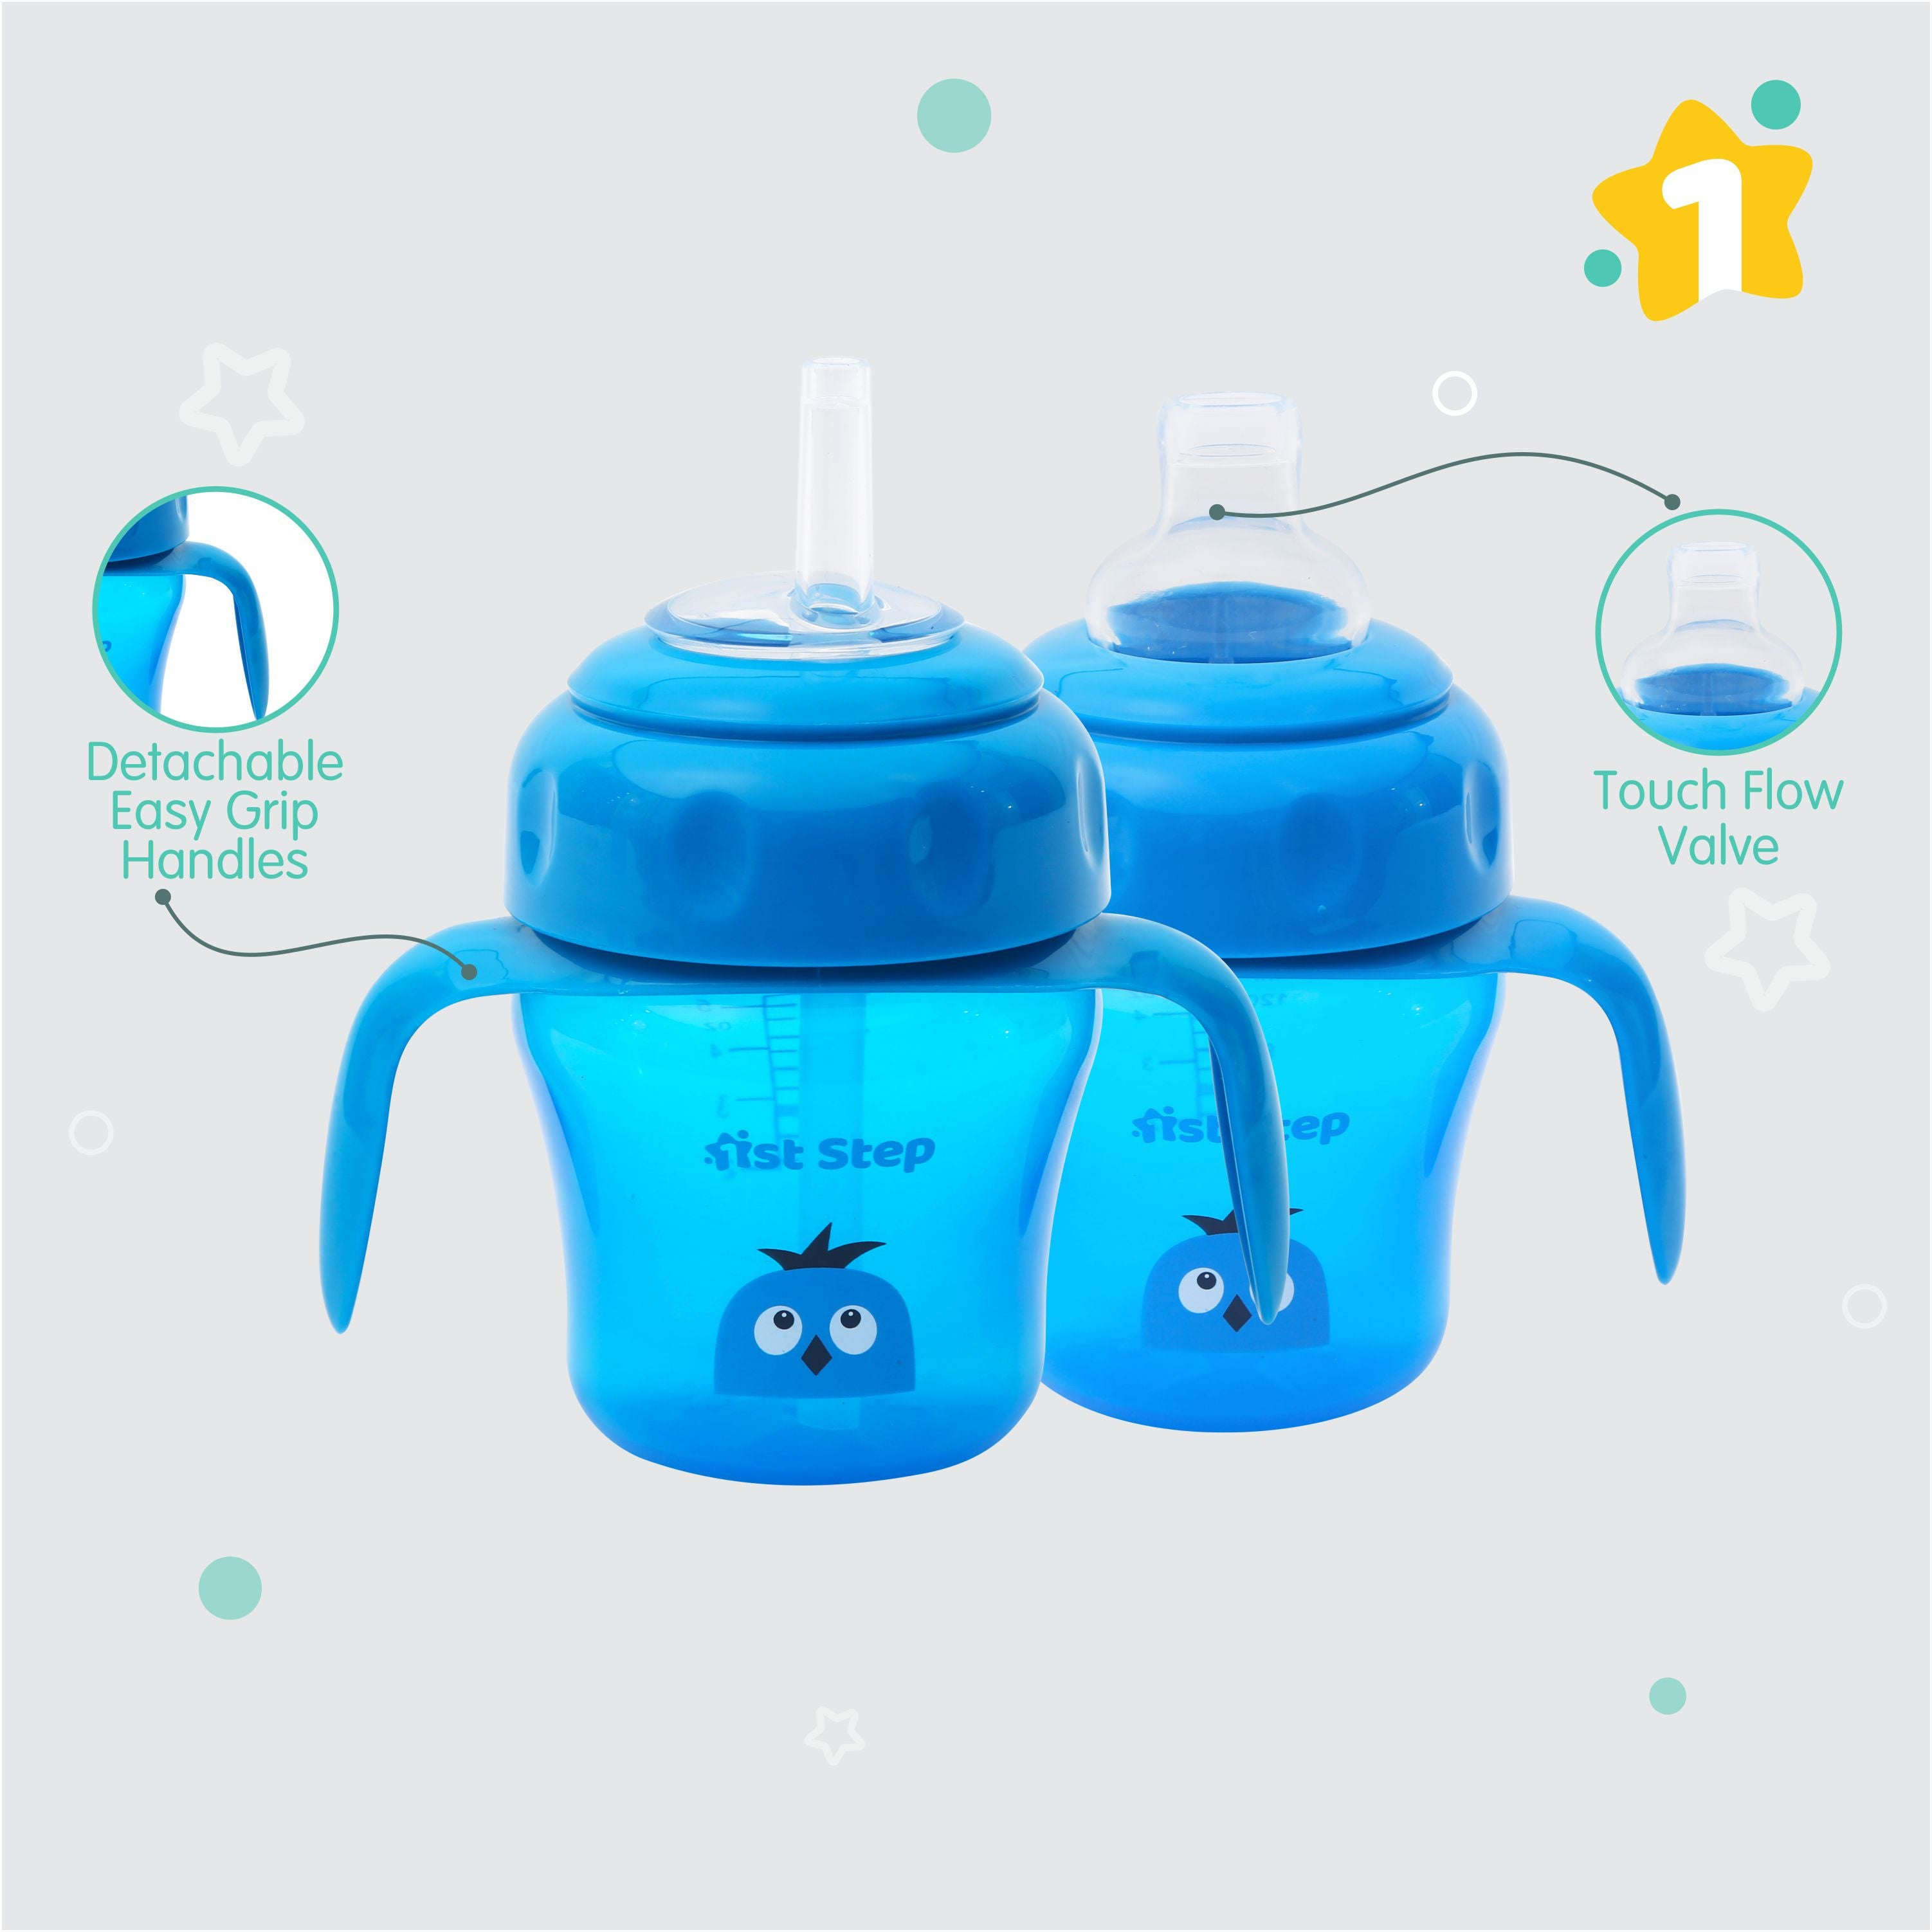 1st Step 150ml Birdie BPA Free Non-SpiII Interchangeable Sipper / Sippy Cup with Soft Silicone Spout And Straw-Blue